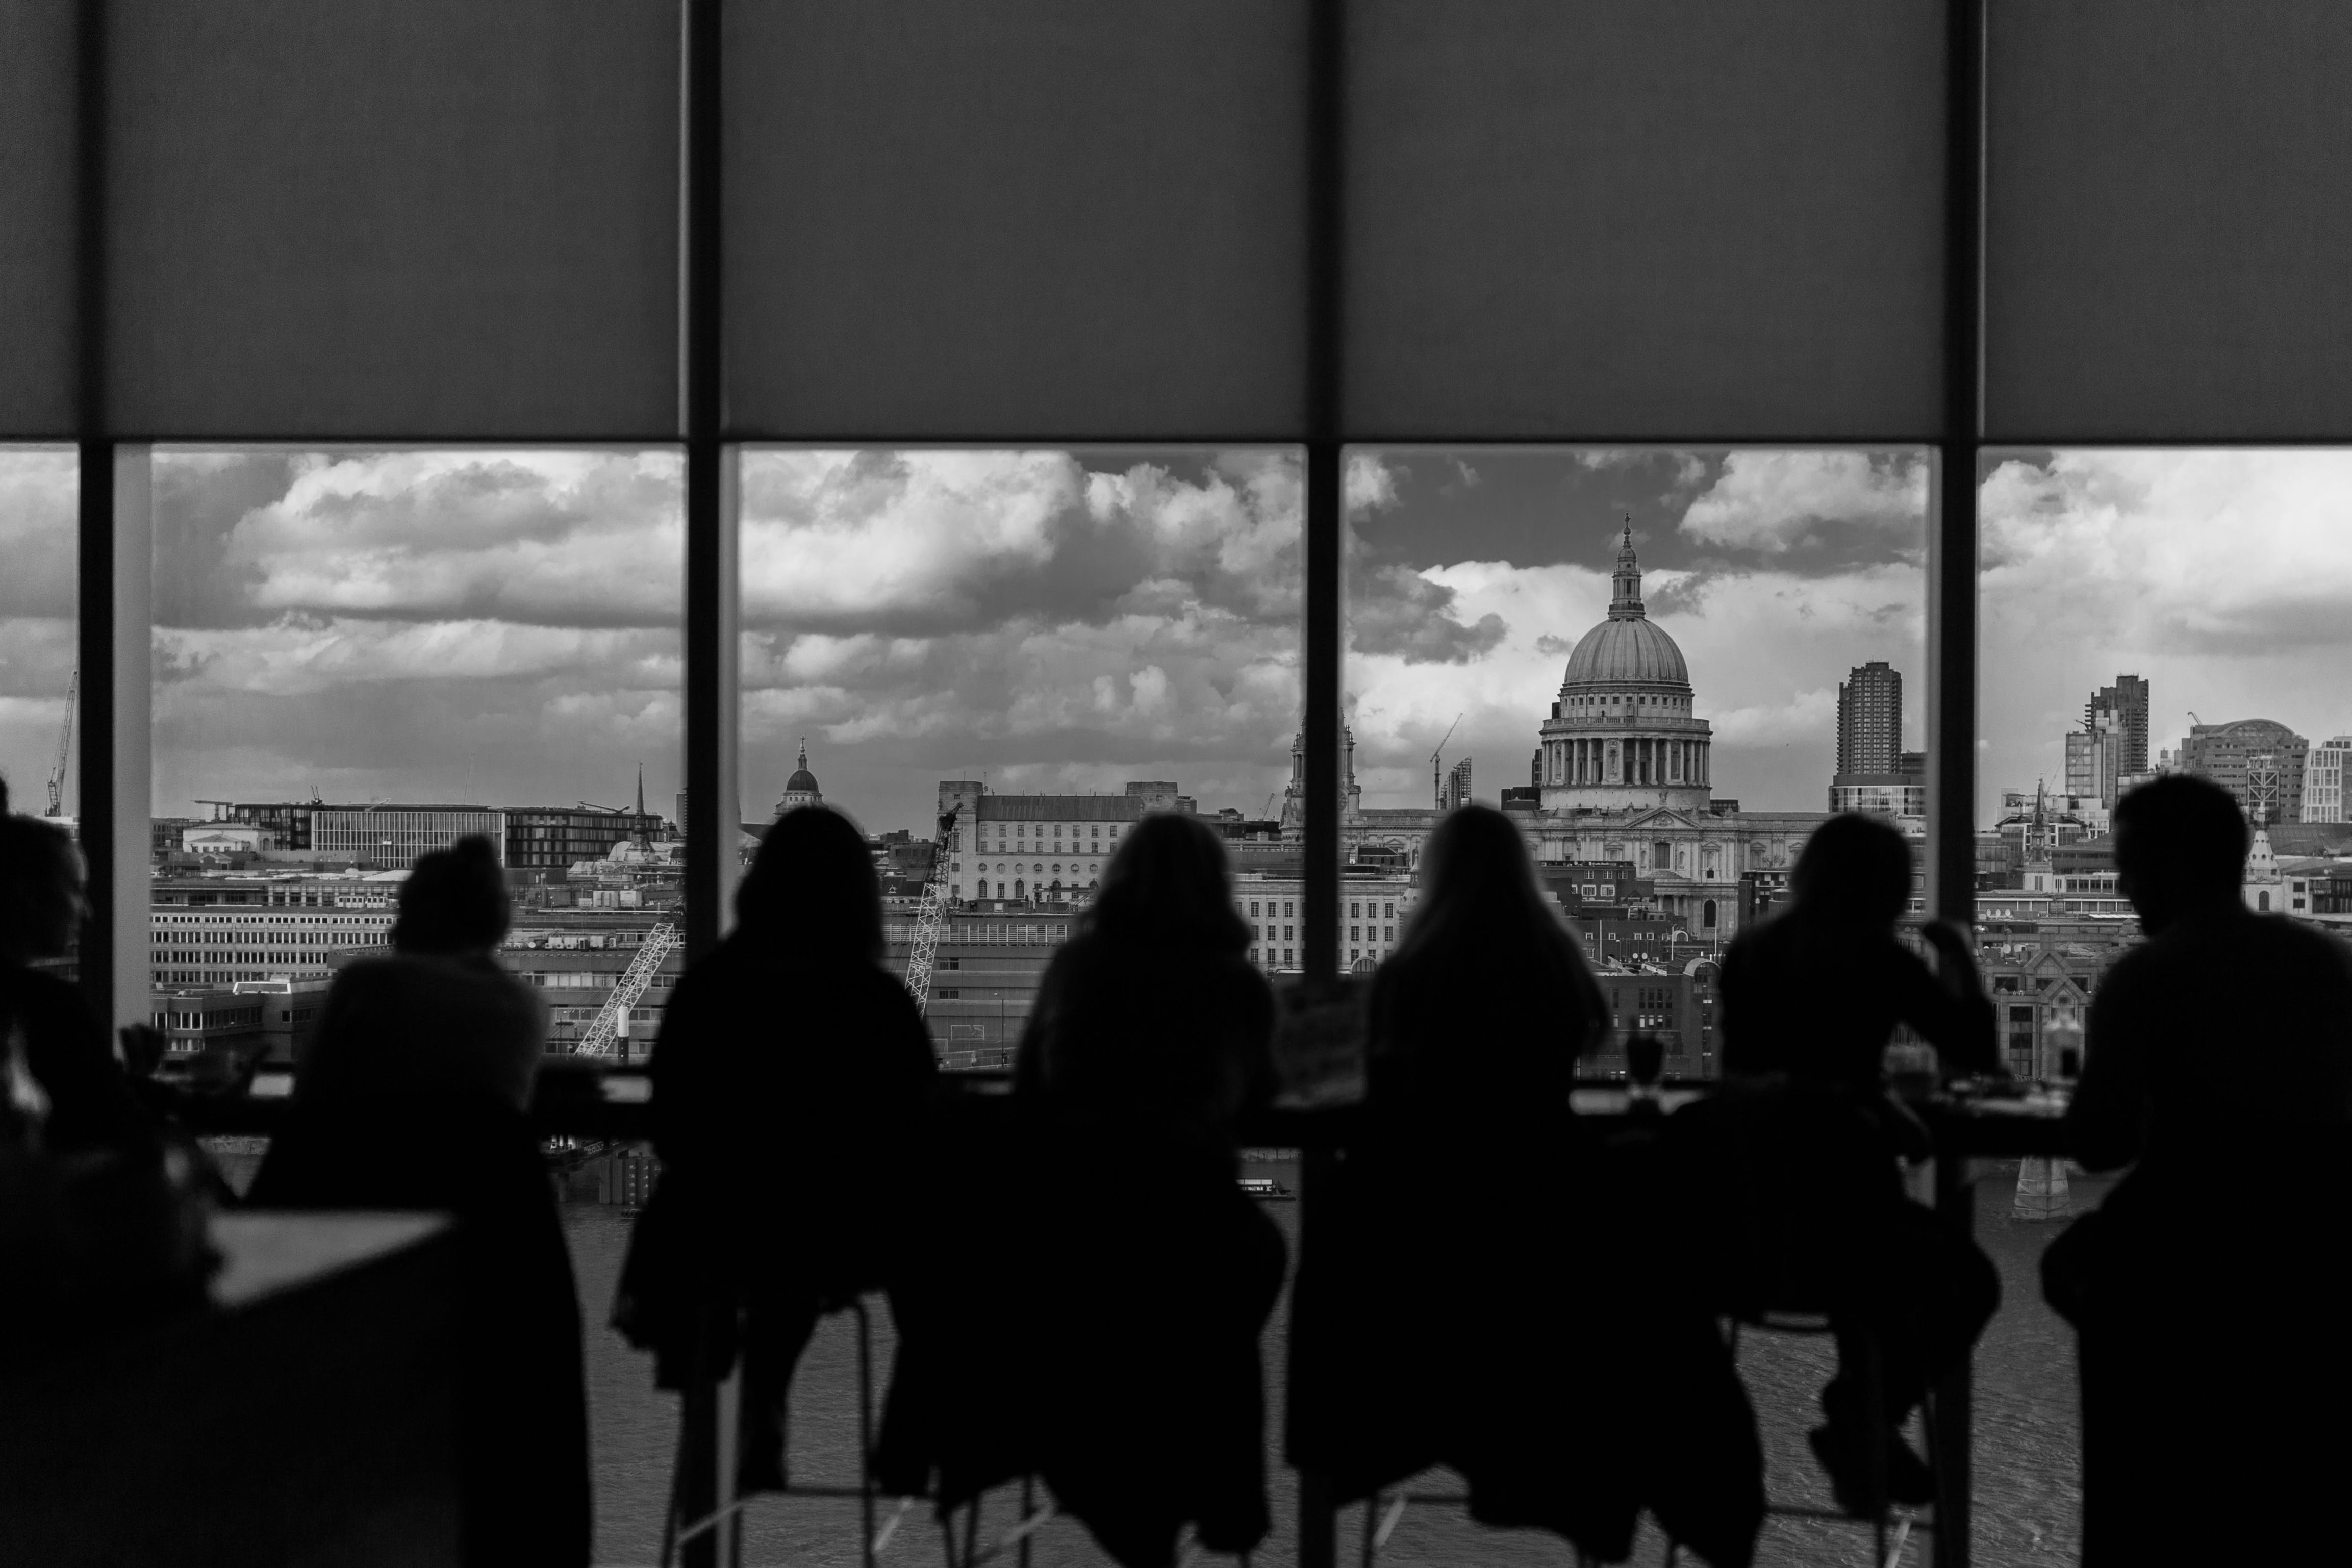 Greyscale Photography of Silhouette of People Inside Building